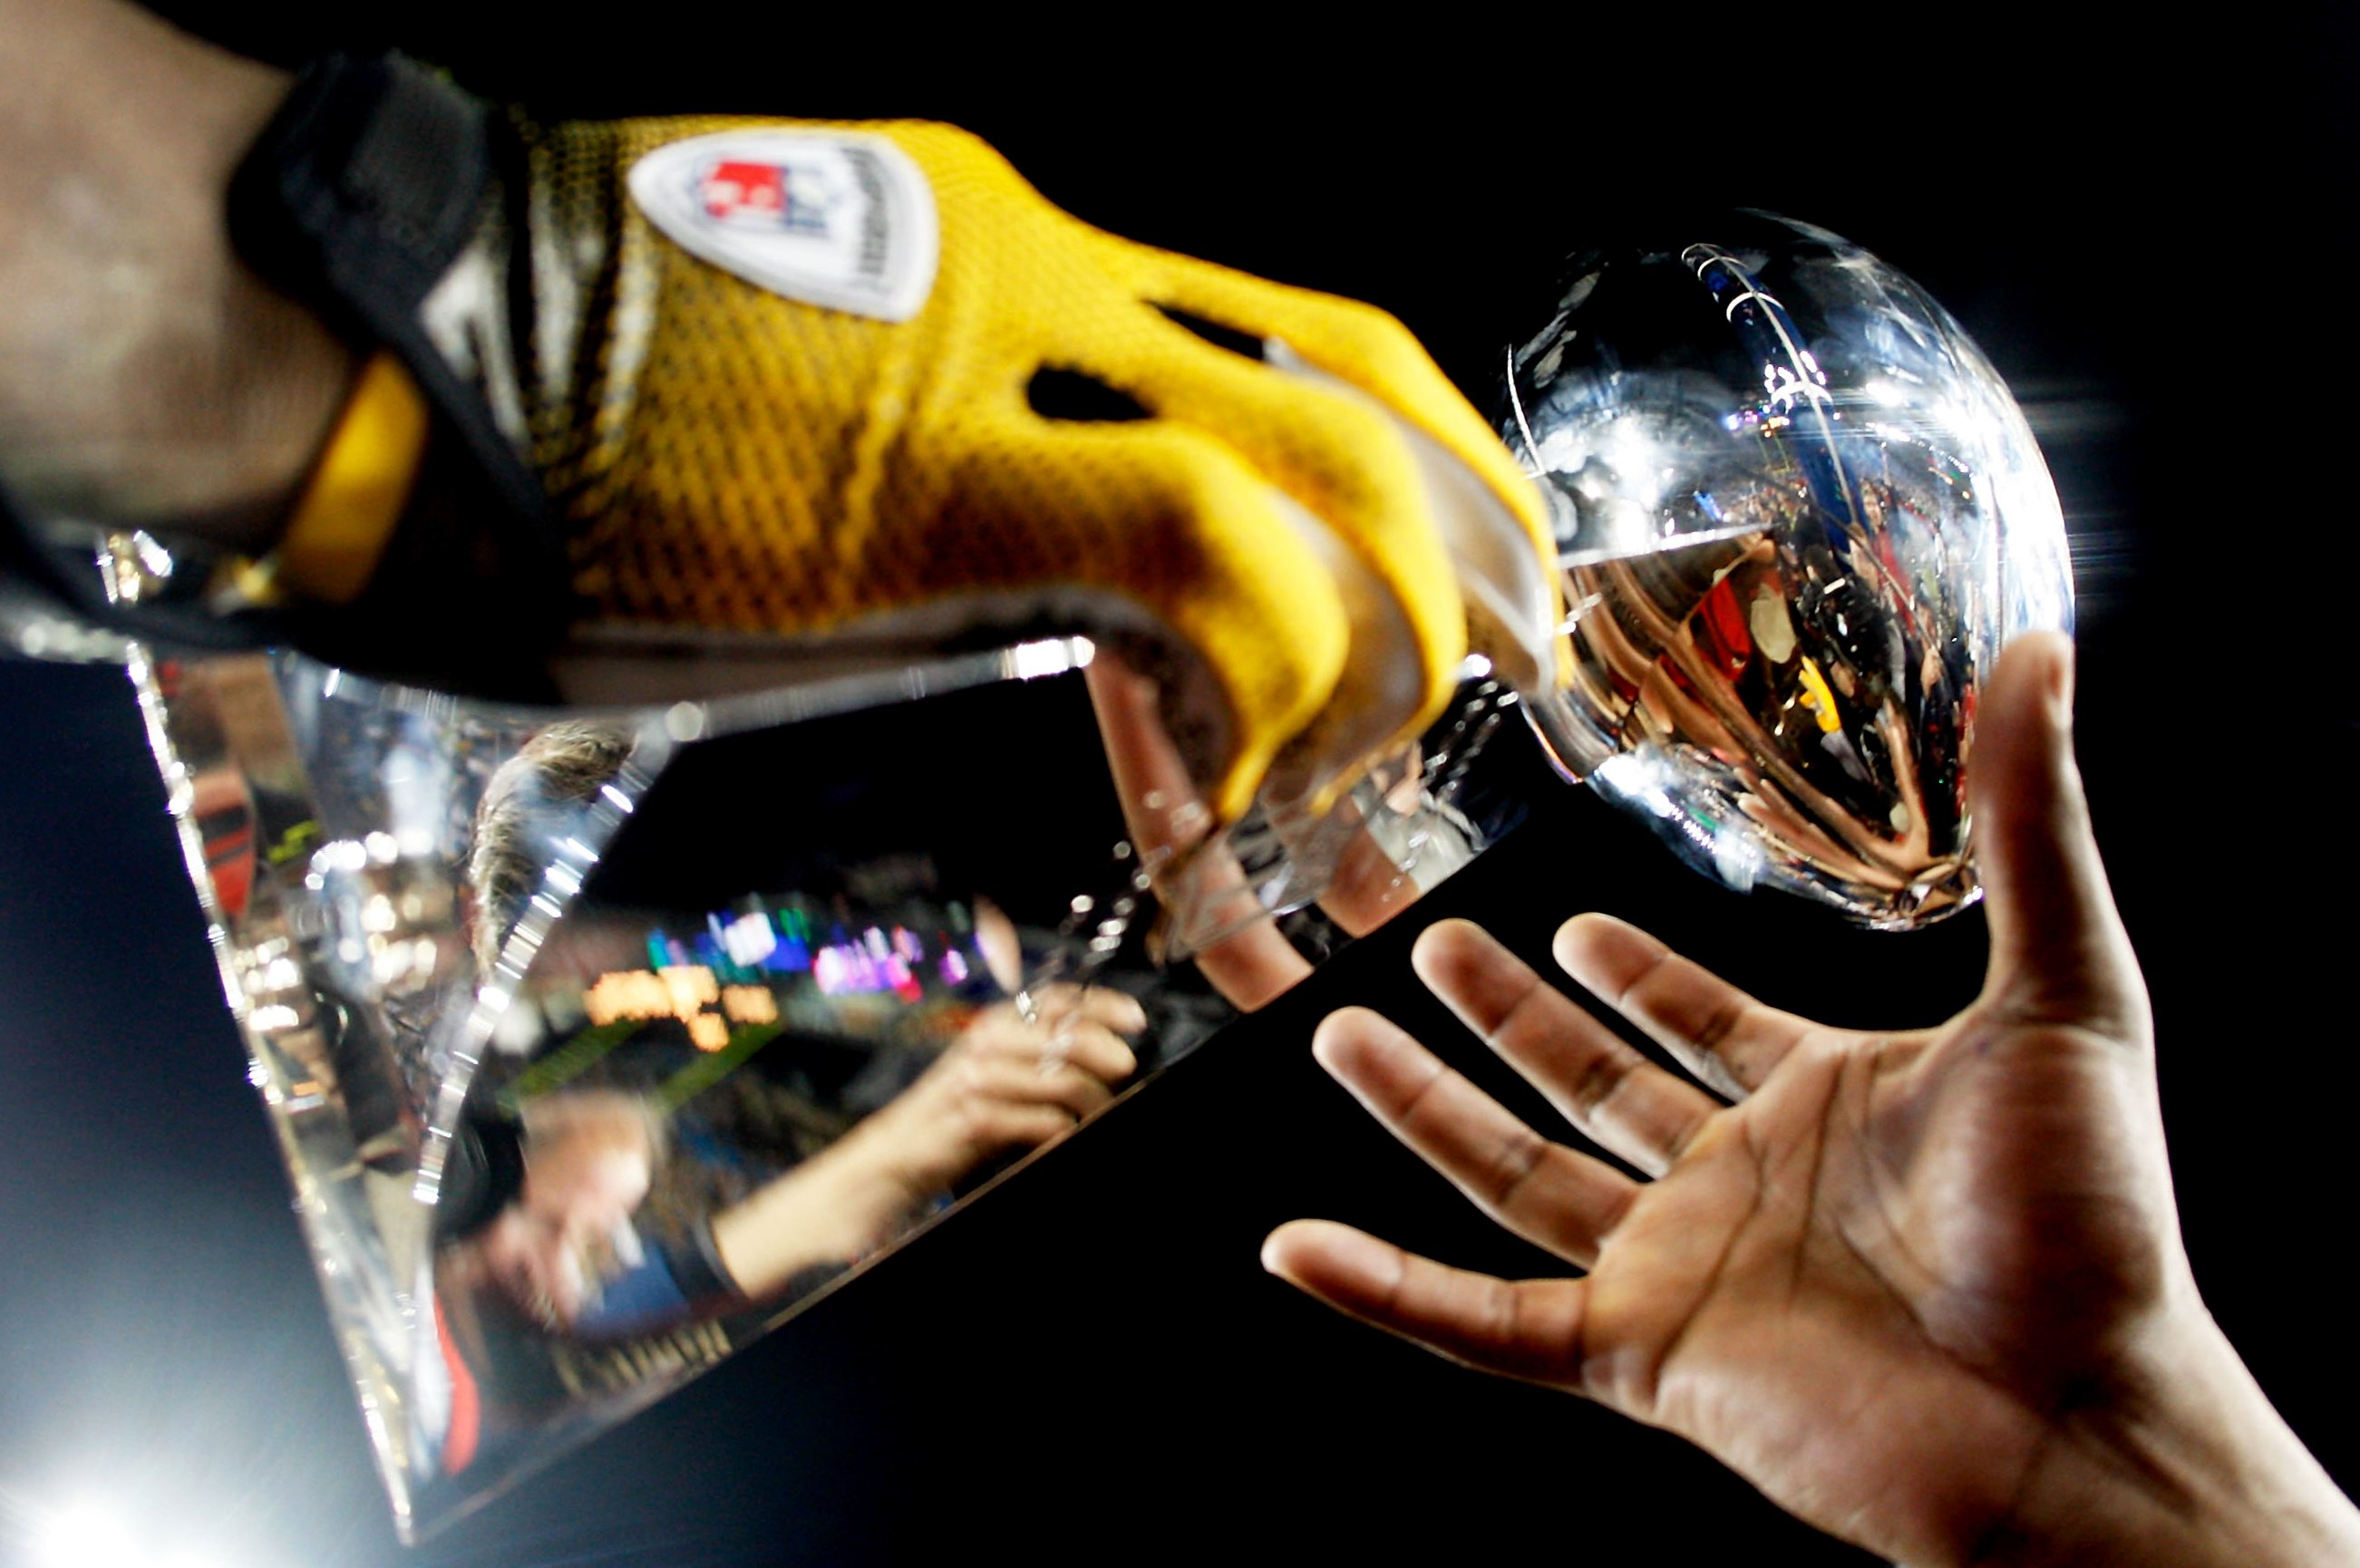 The Pittsburgh Steelers celebrate with the Vince Lombardi trophy after their Super Bowl XLIII win against the Arizona Cardinals on Feb. 1, 2009 at Raymond James Stadium in Tampa, Fla.